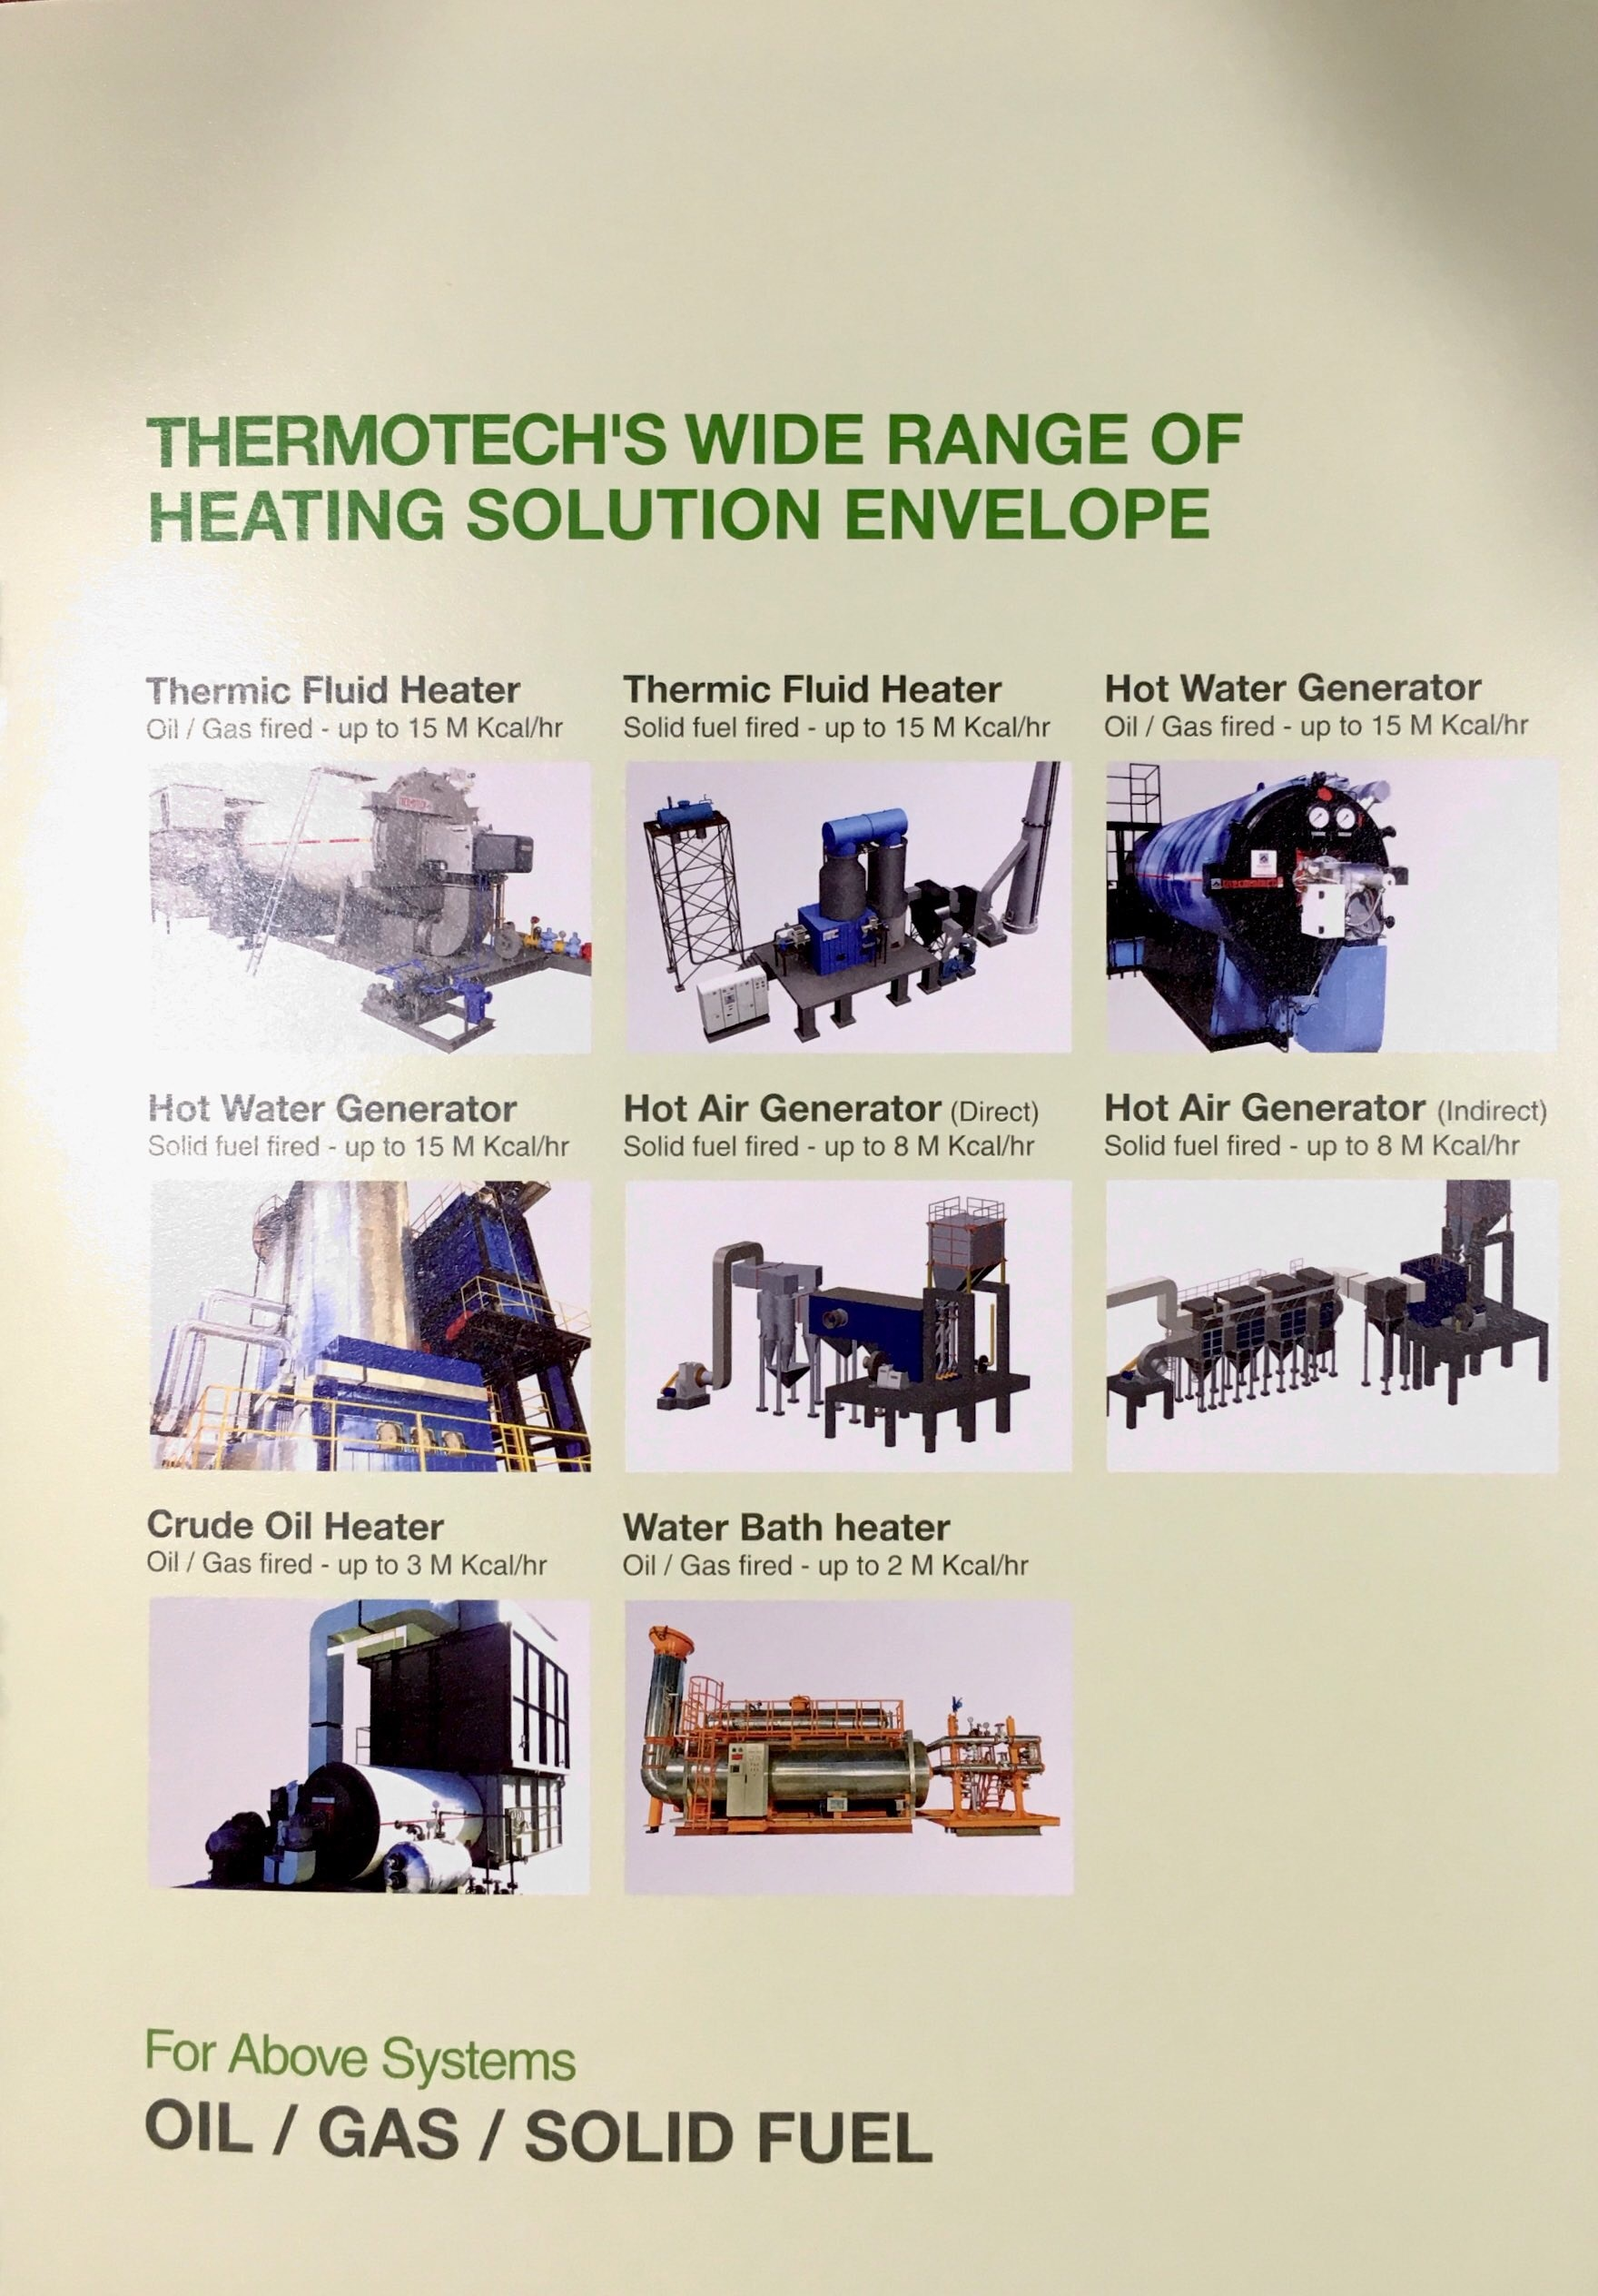 Thermotech Systems Ltd. is an internationally renowned eco-energy company hailing from India established before 28 years with more than 2500 Clients list till today and counting. Thermotech's involved in wide range of heating solution envelope mainly Hot air generator (Direct/Indirect), Hot water generator, Crude oil Generator & water bath generator with a feeding duel as Oil, Gas & Solid fuel.